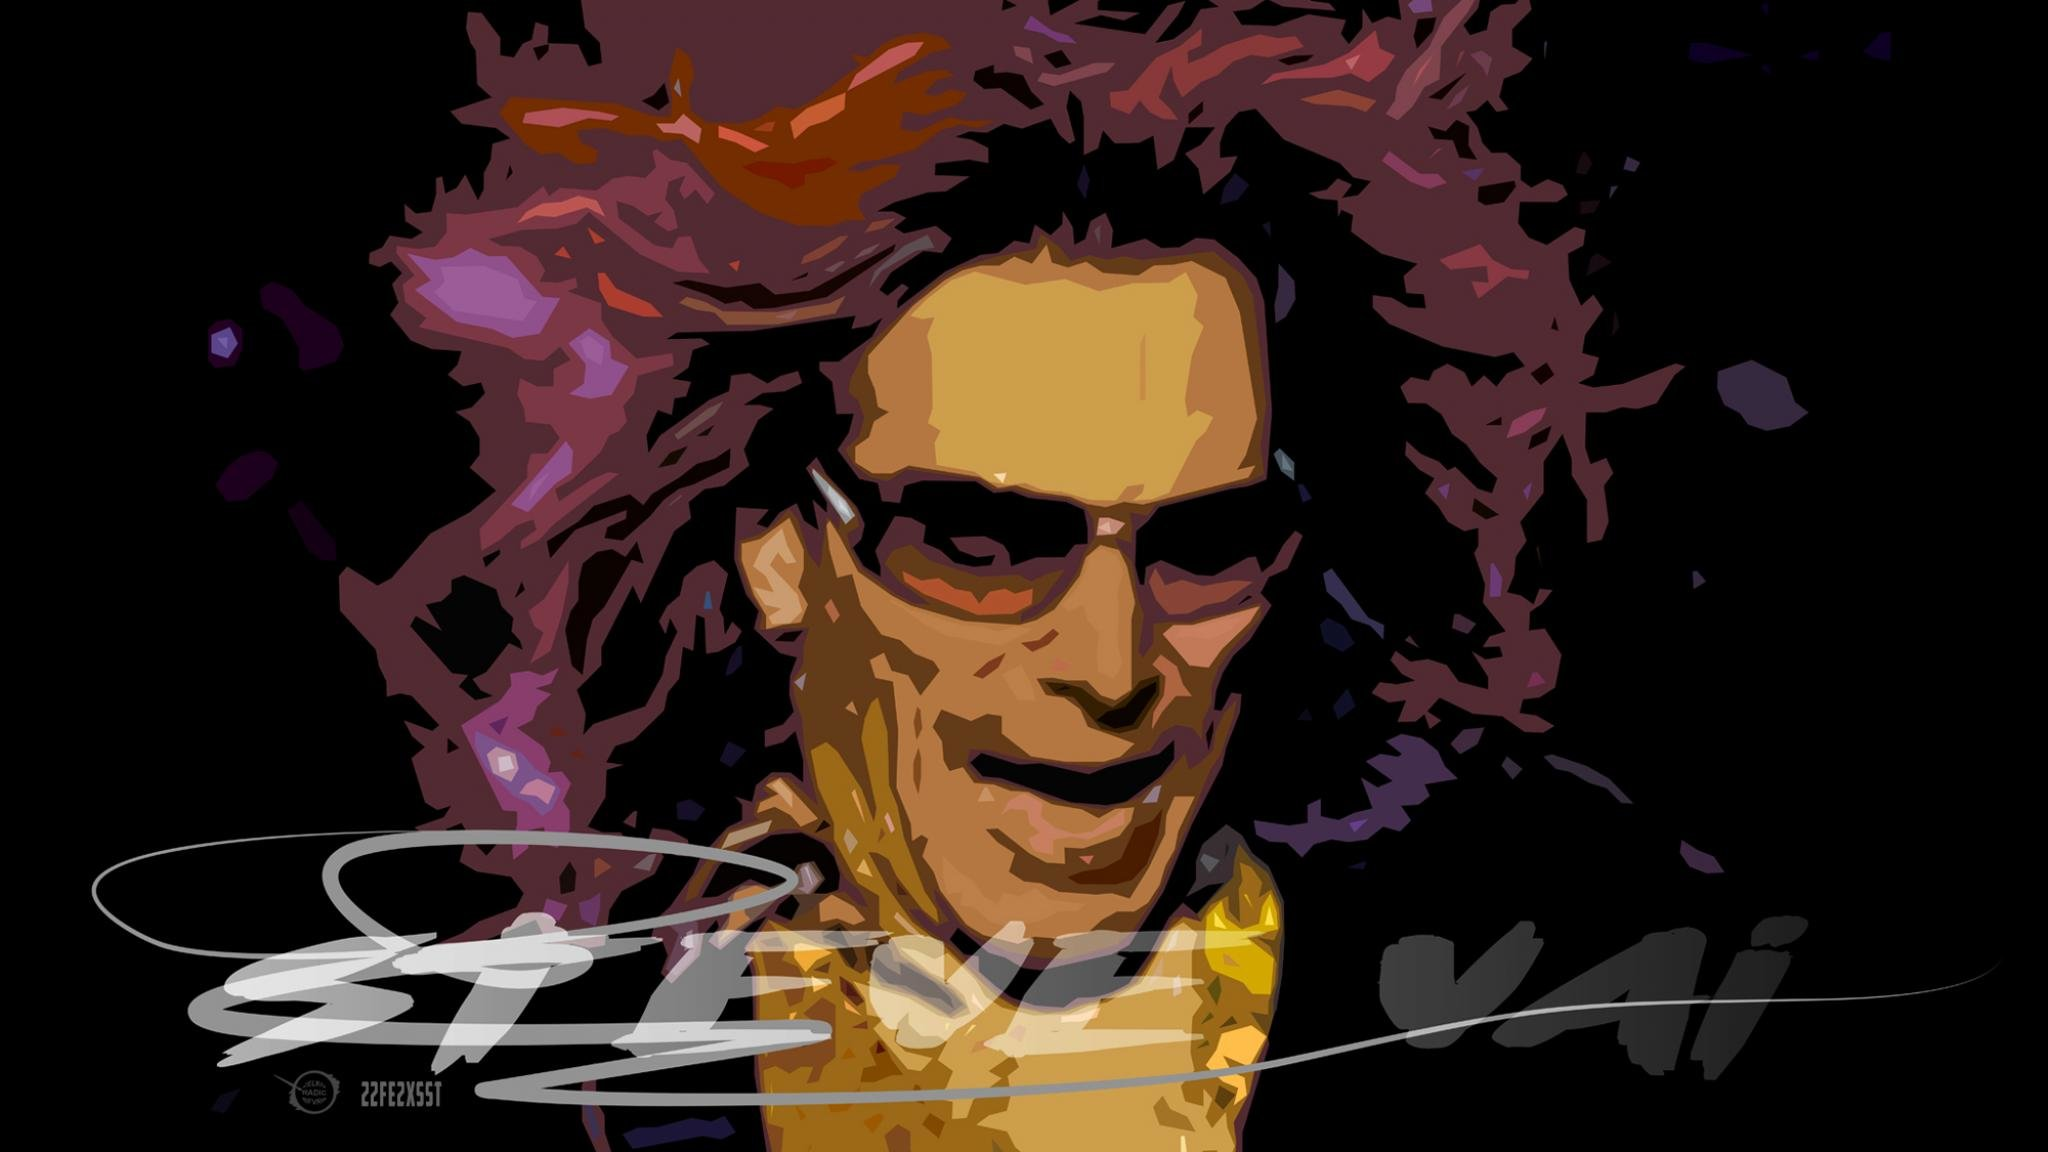 Steve Vai Wallpapers Hd For Desktop Backgrounds